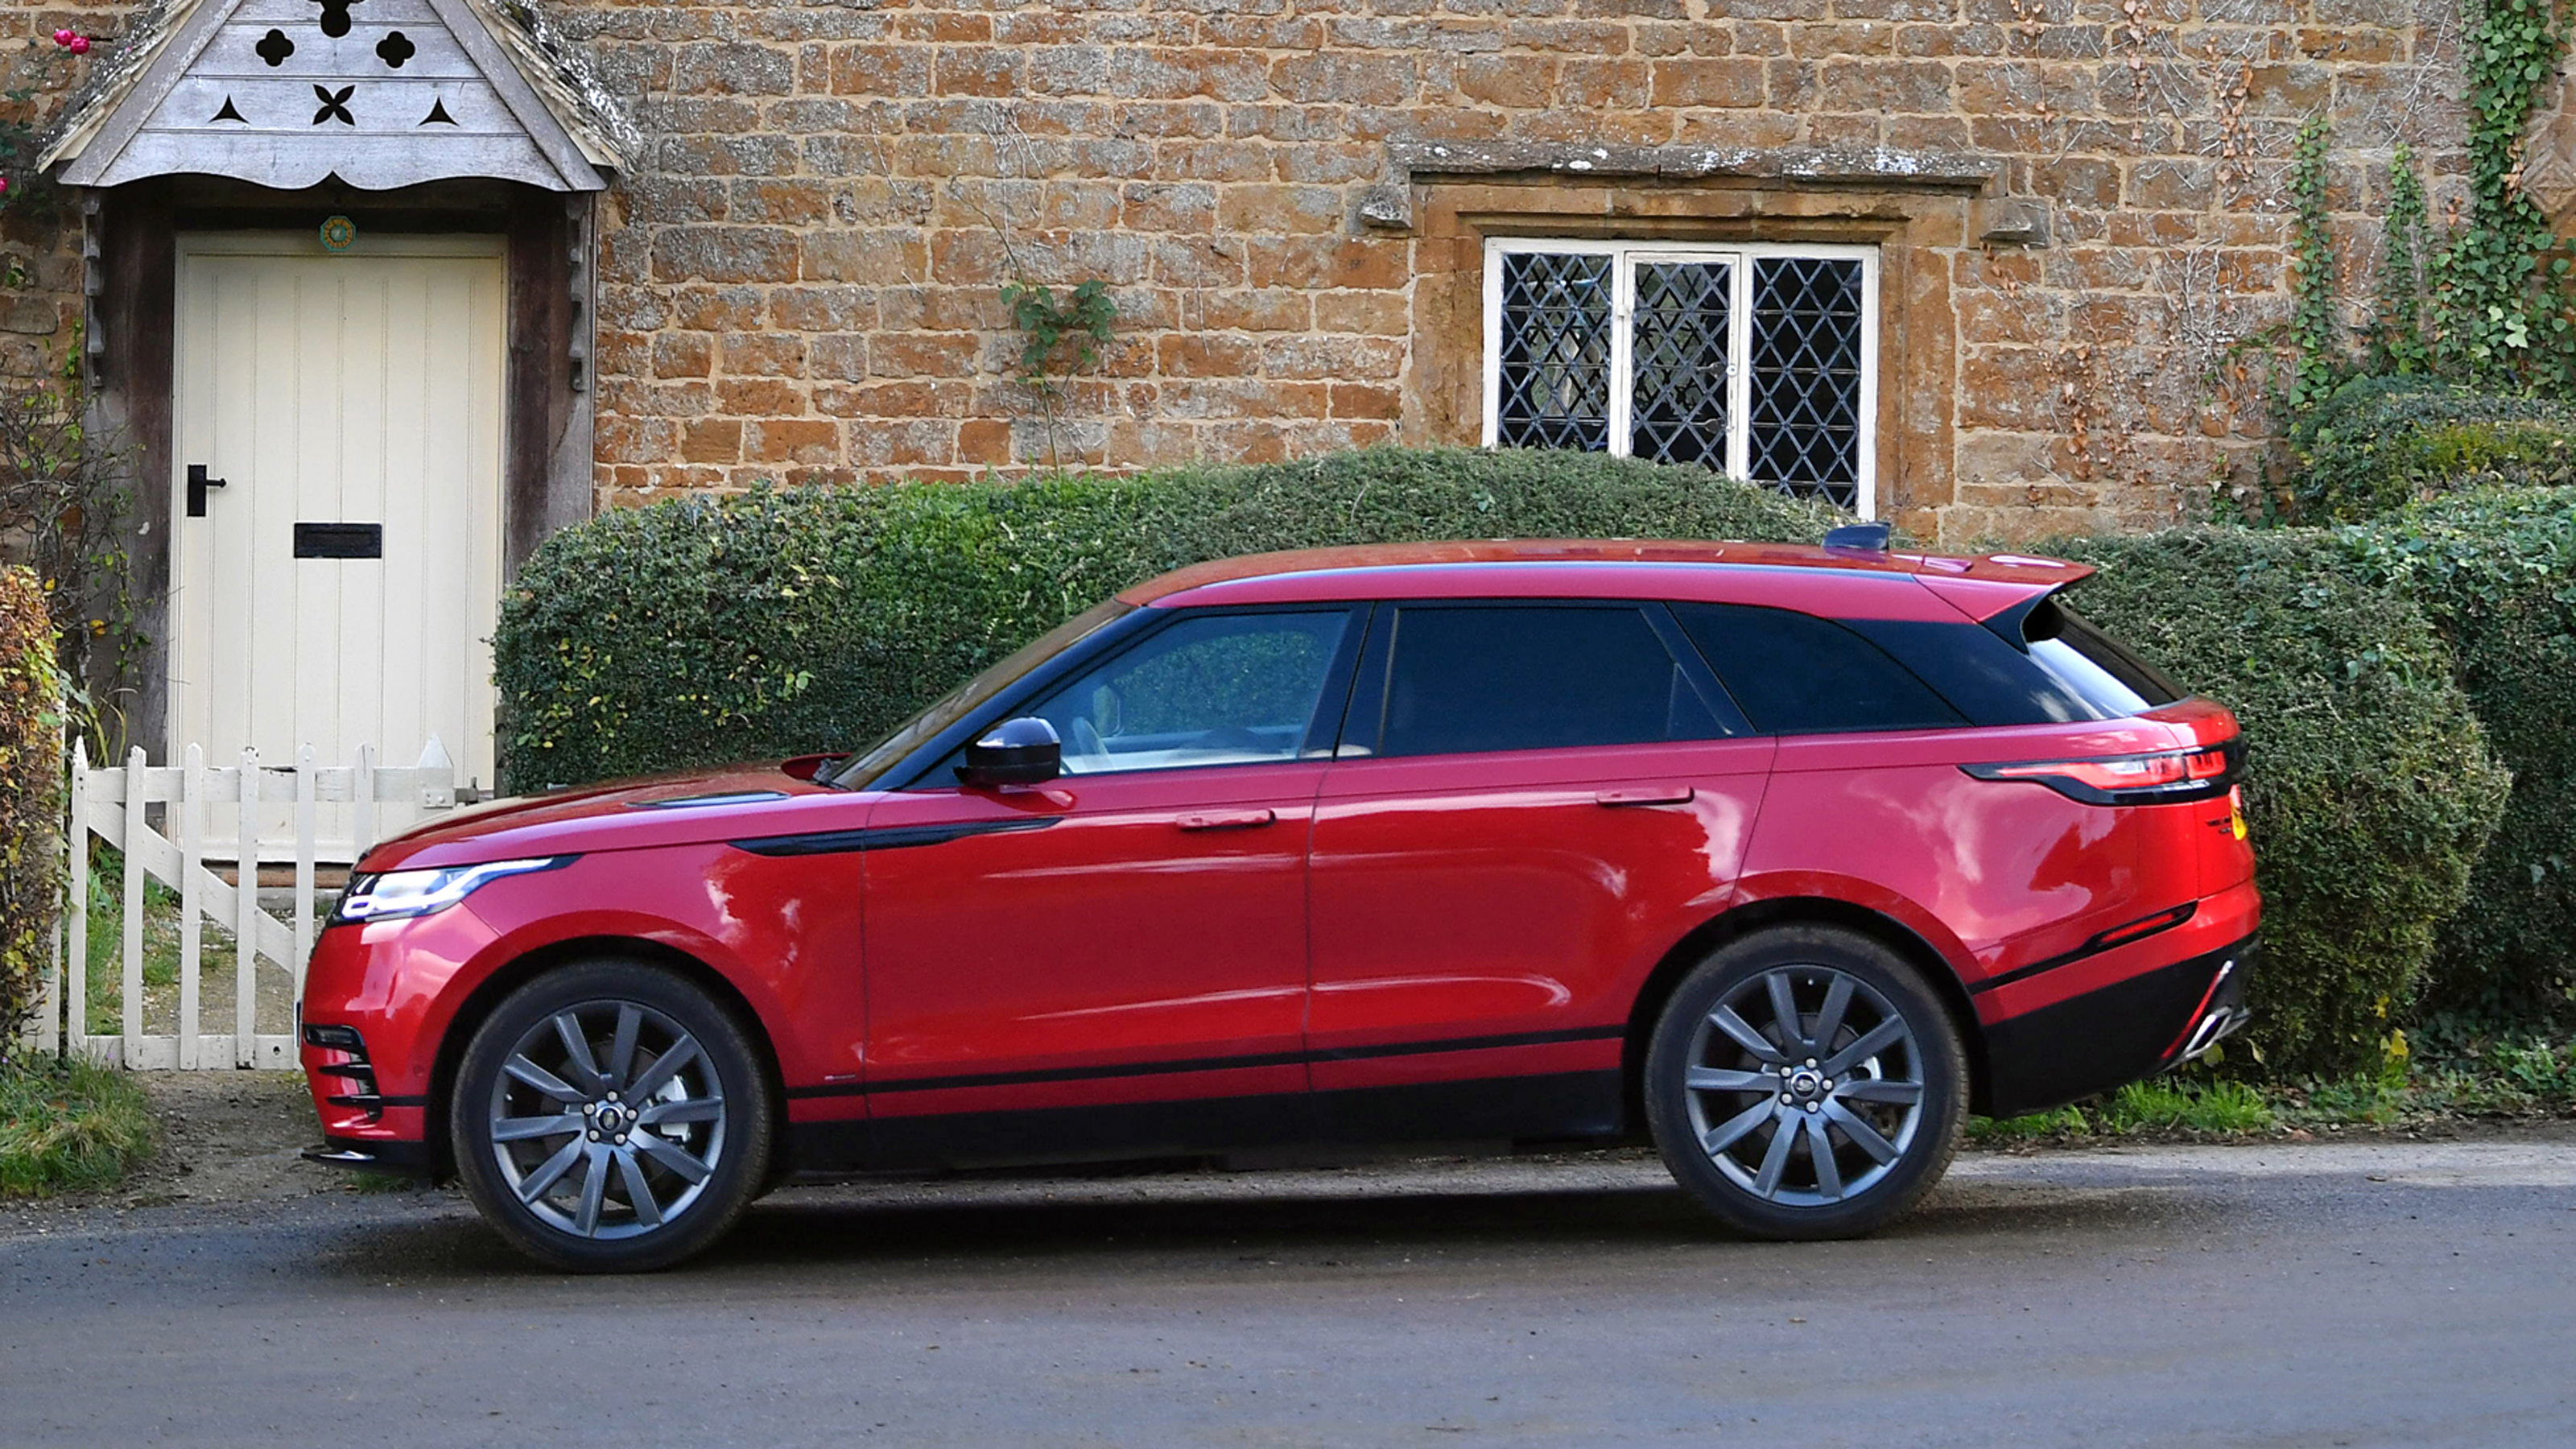 New diesel engine option for Range Rover Velar